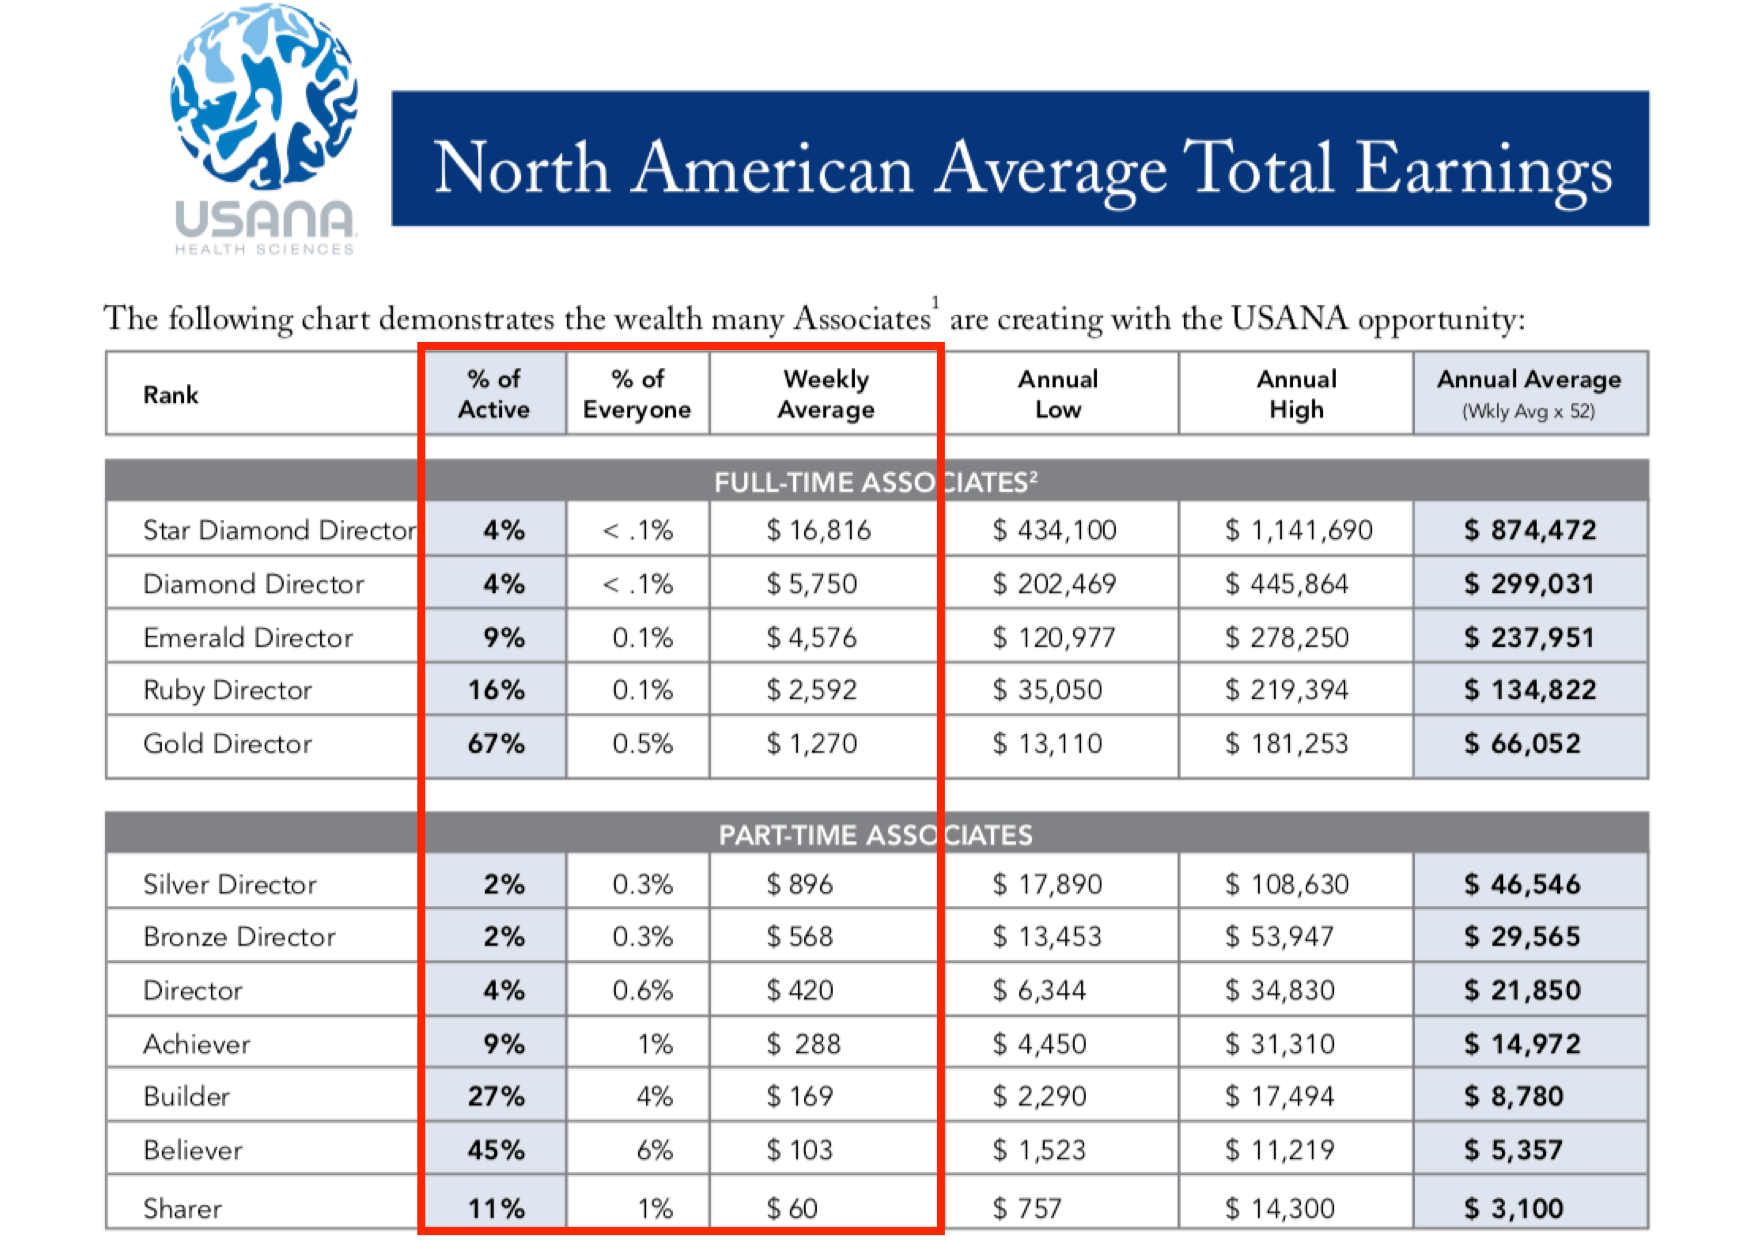 USANA Health Sciences Review Average-Earnings-from-USANA-North-Ameican-2011